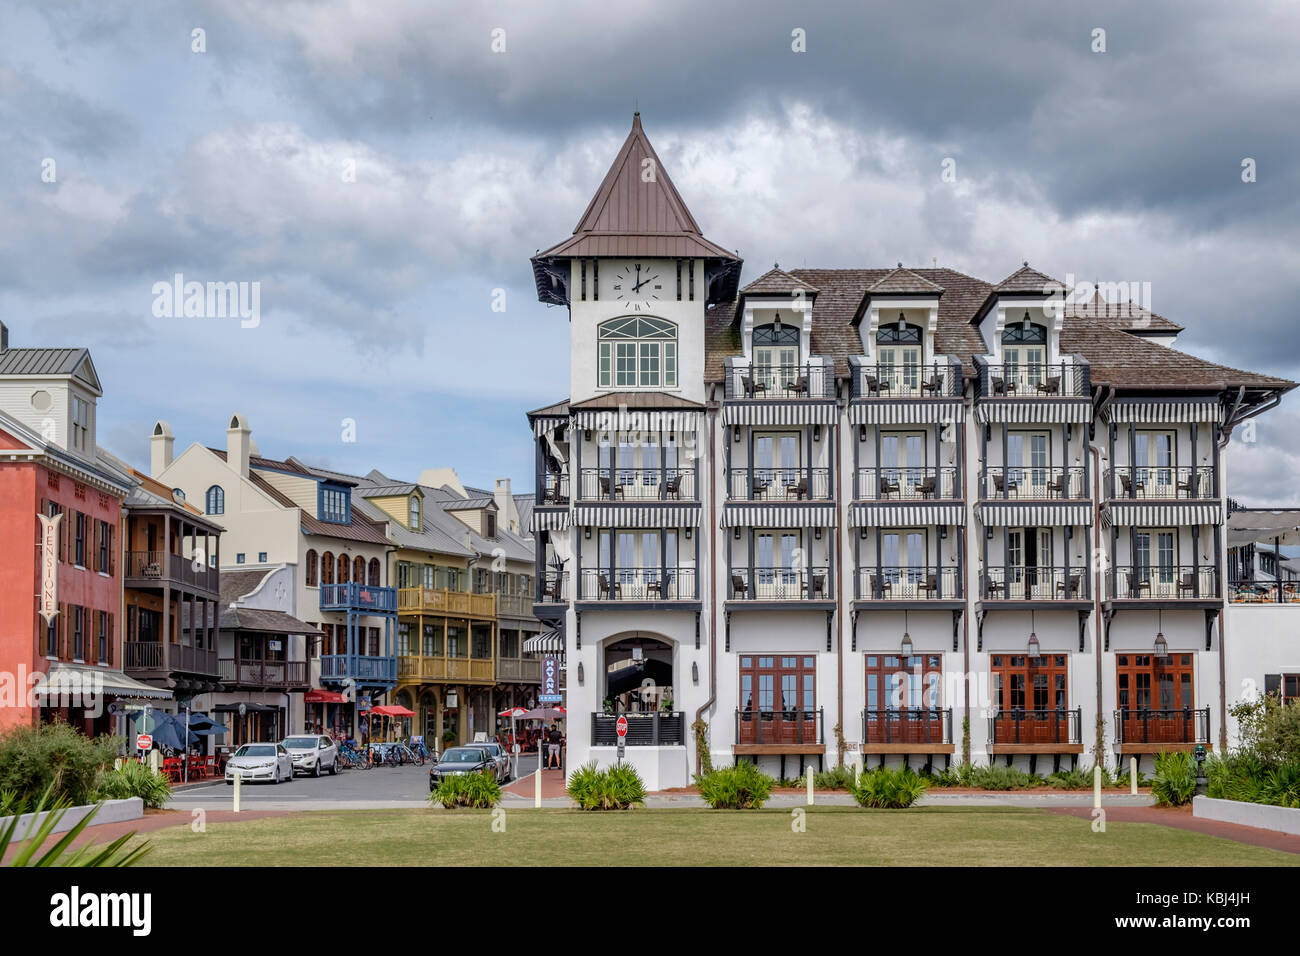 The Pearl Hotel exterior on the Gulf of Mexico, a beach side hotel in Rosemary Beach, Florida USA. Stock Photo